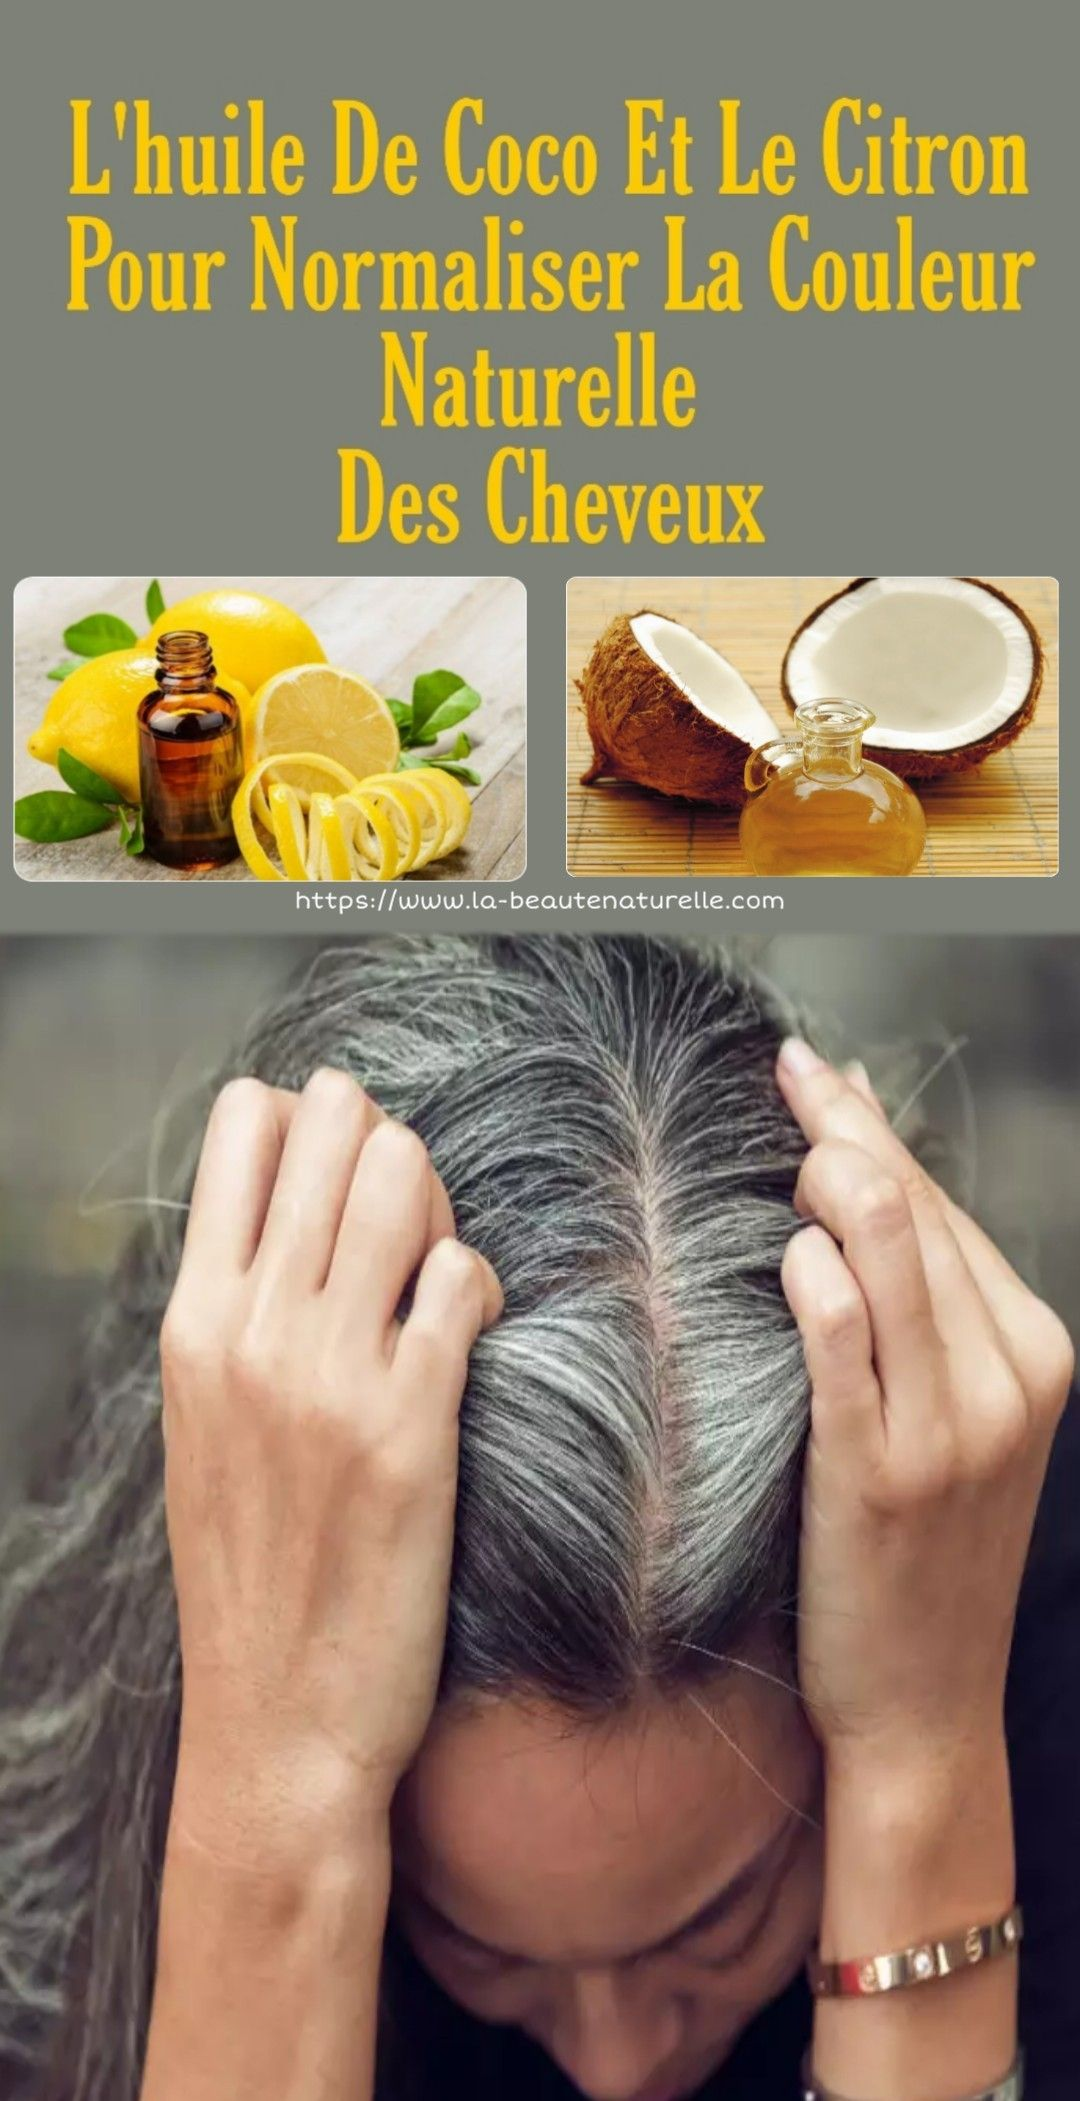 Photo of Coconut oil and lemon to normalize the natural color …